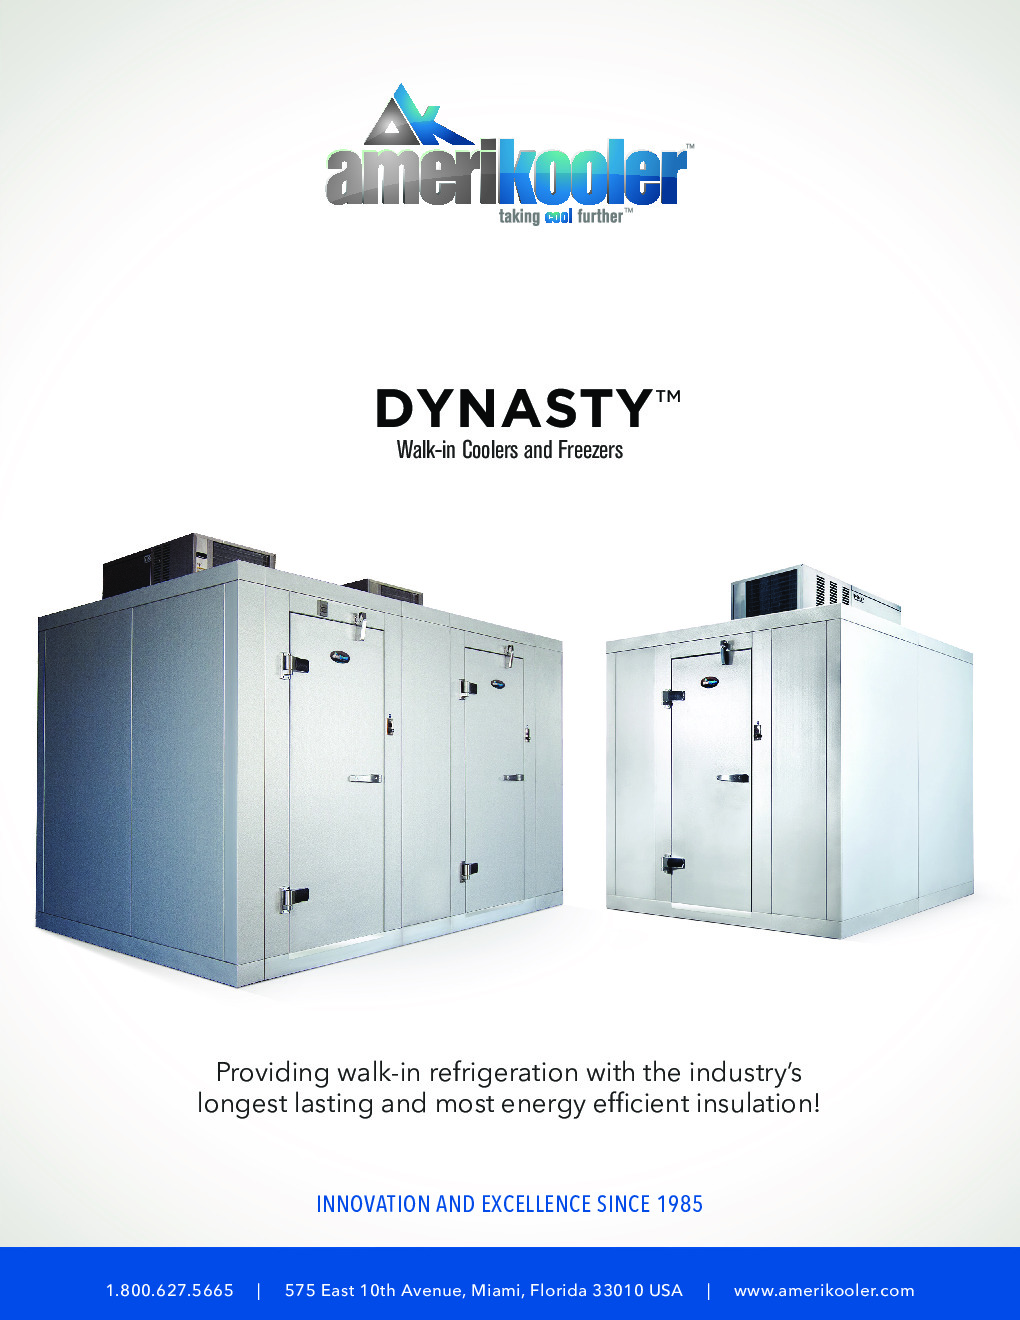 AmeriKooler DW091477F-5/9-SC 9' X 14' Walk-In Cooler, 9' L Cooler with Floor and 5' L Freezer, Self Contained